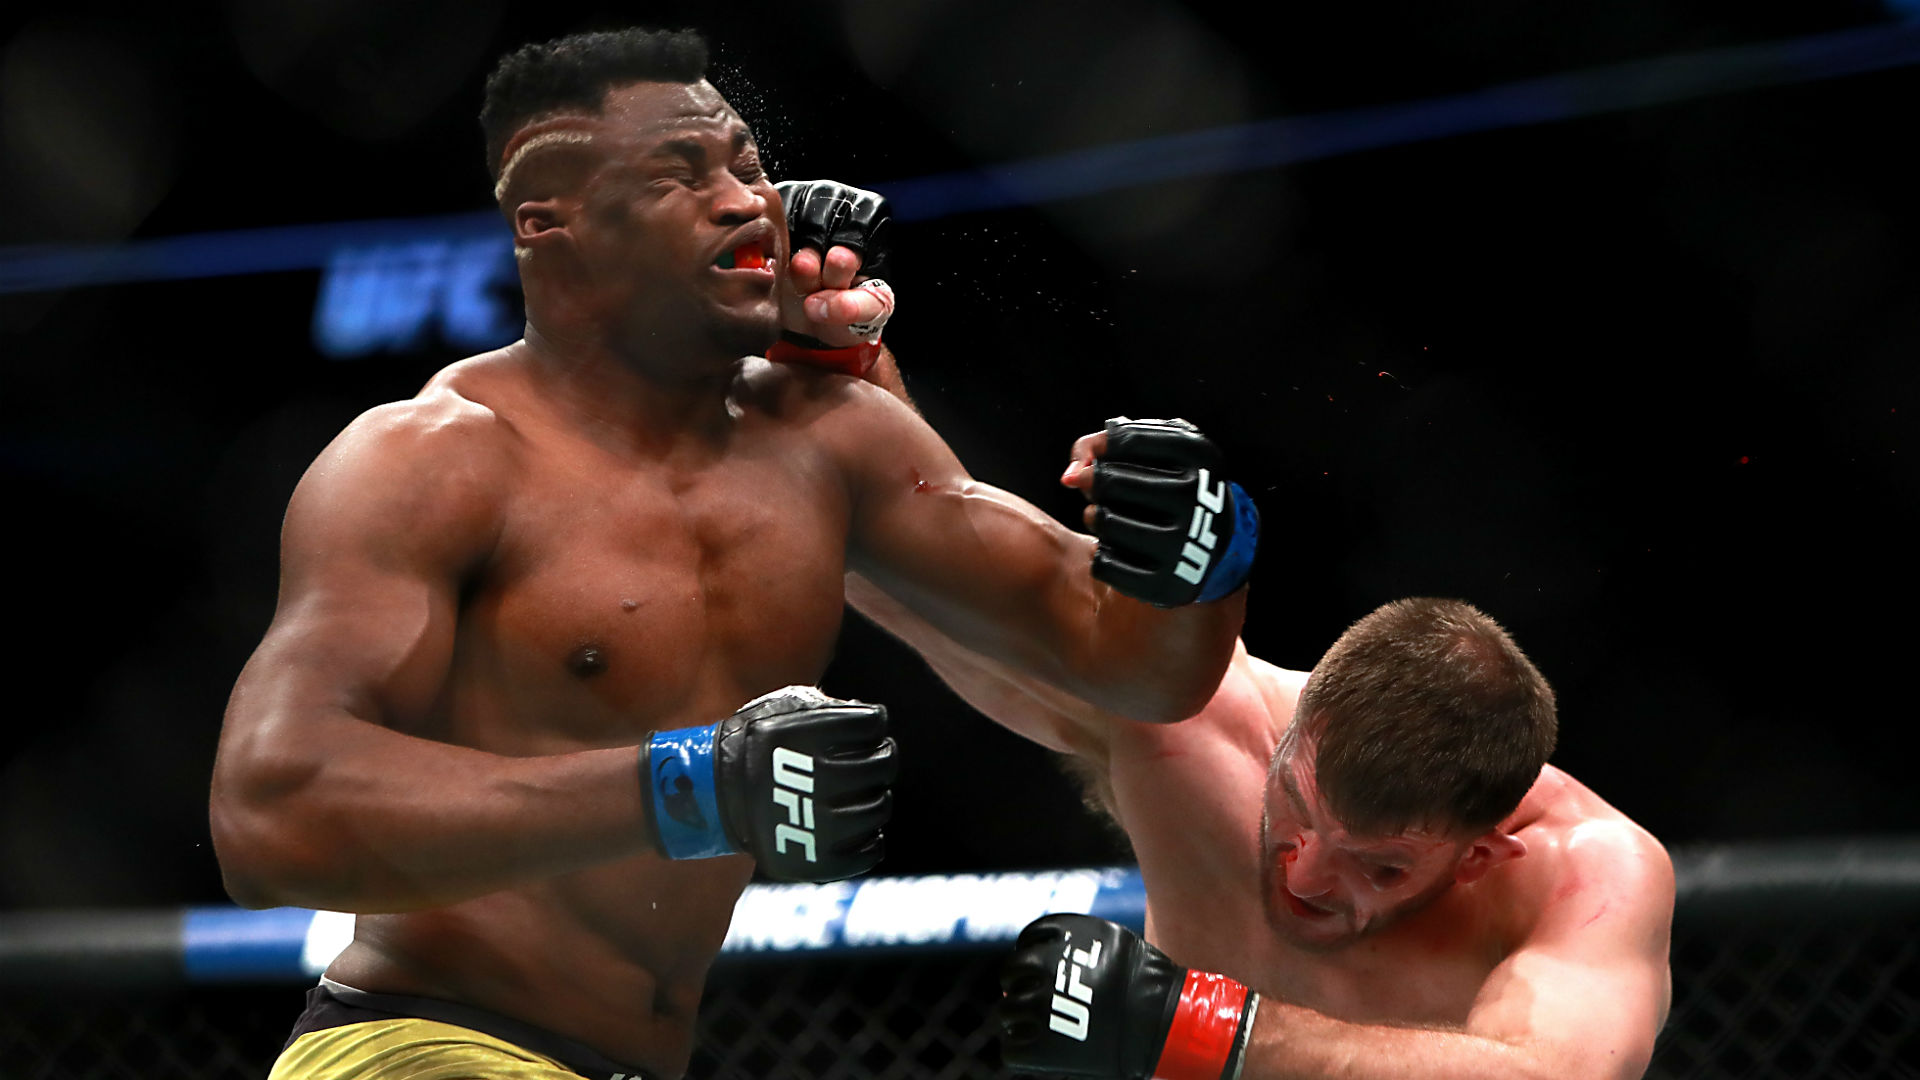 What's next for Francis Ngannou after UFC 220?